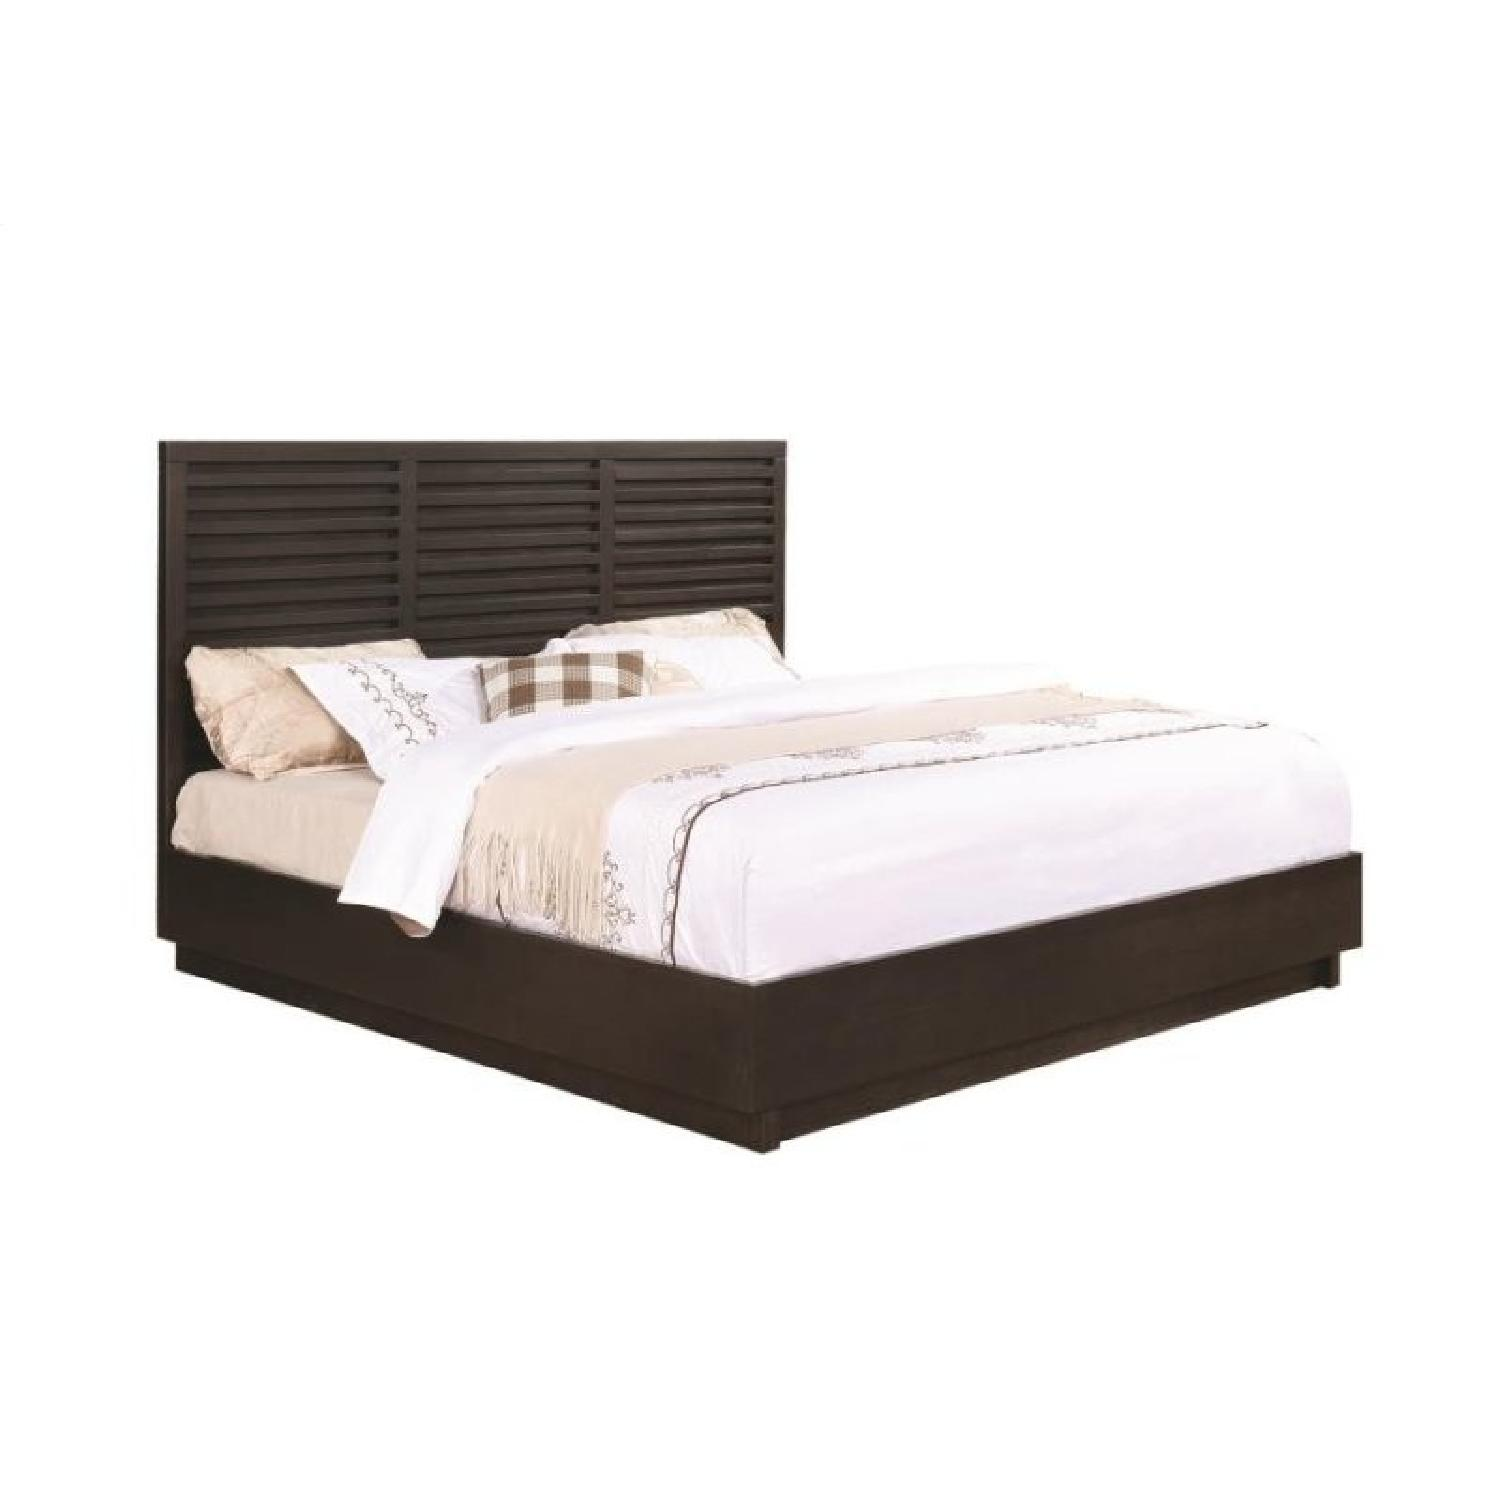 Transitional Style King Size Bed in Graphite Finish